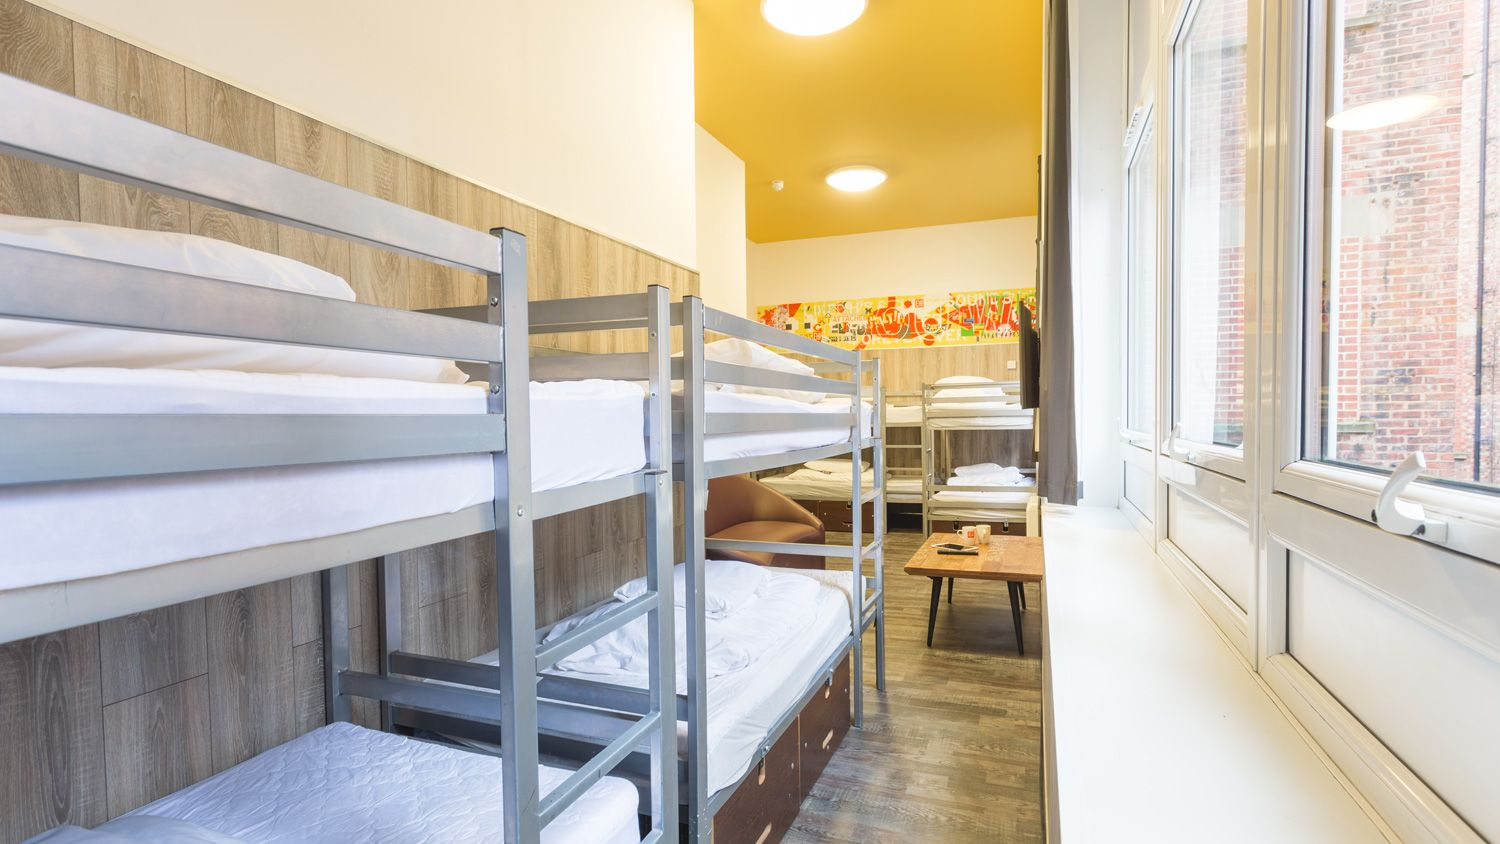 6 Person Mini Suite at Euro Hostel Newcastle